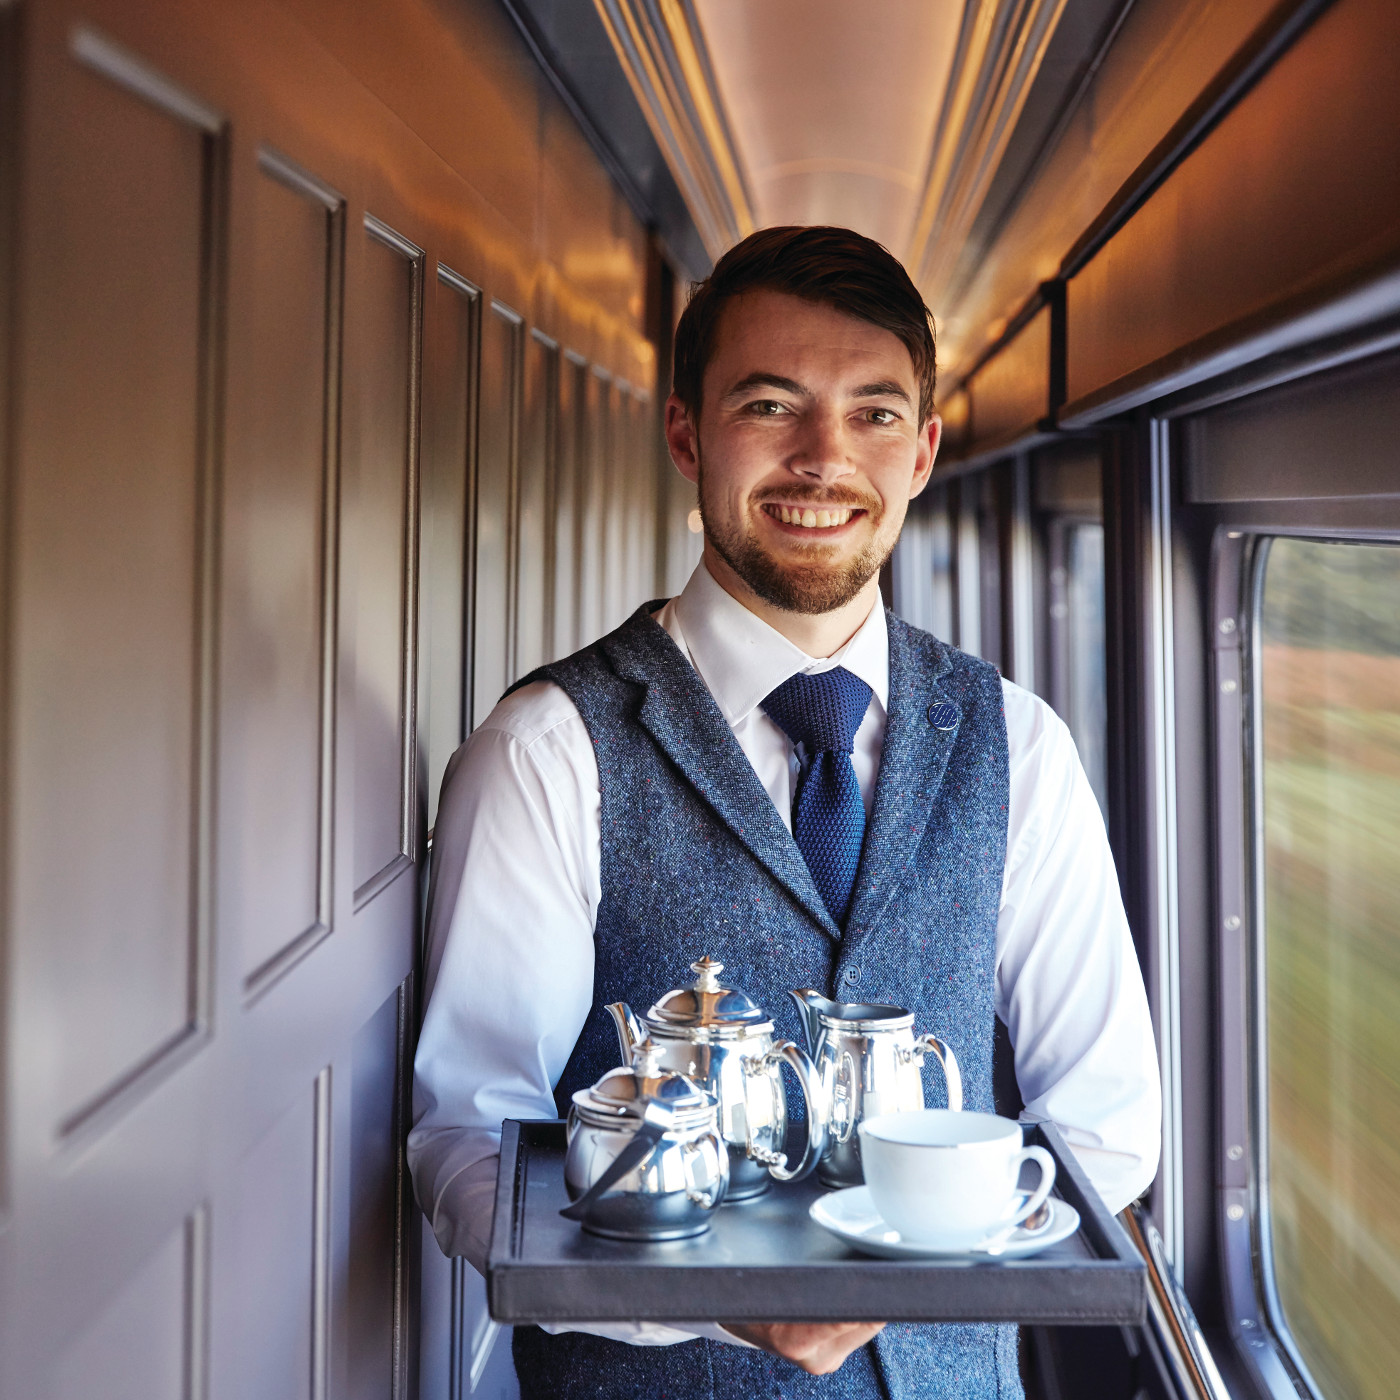 5 Unforgettable Rail Experiences To Try In 2019